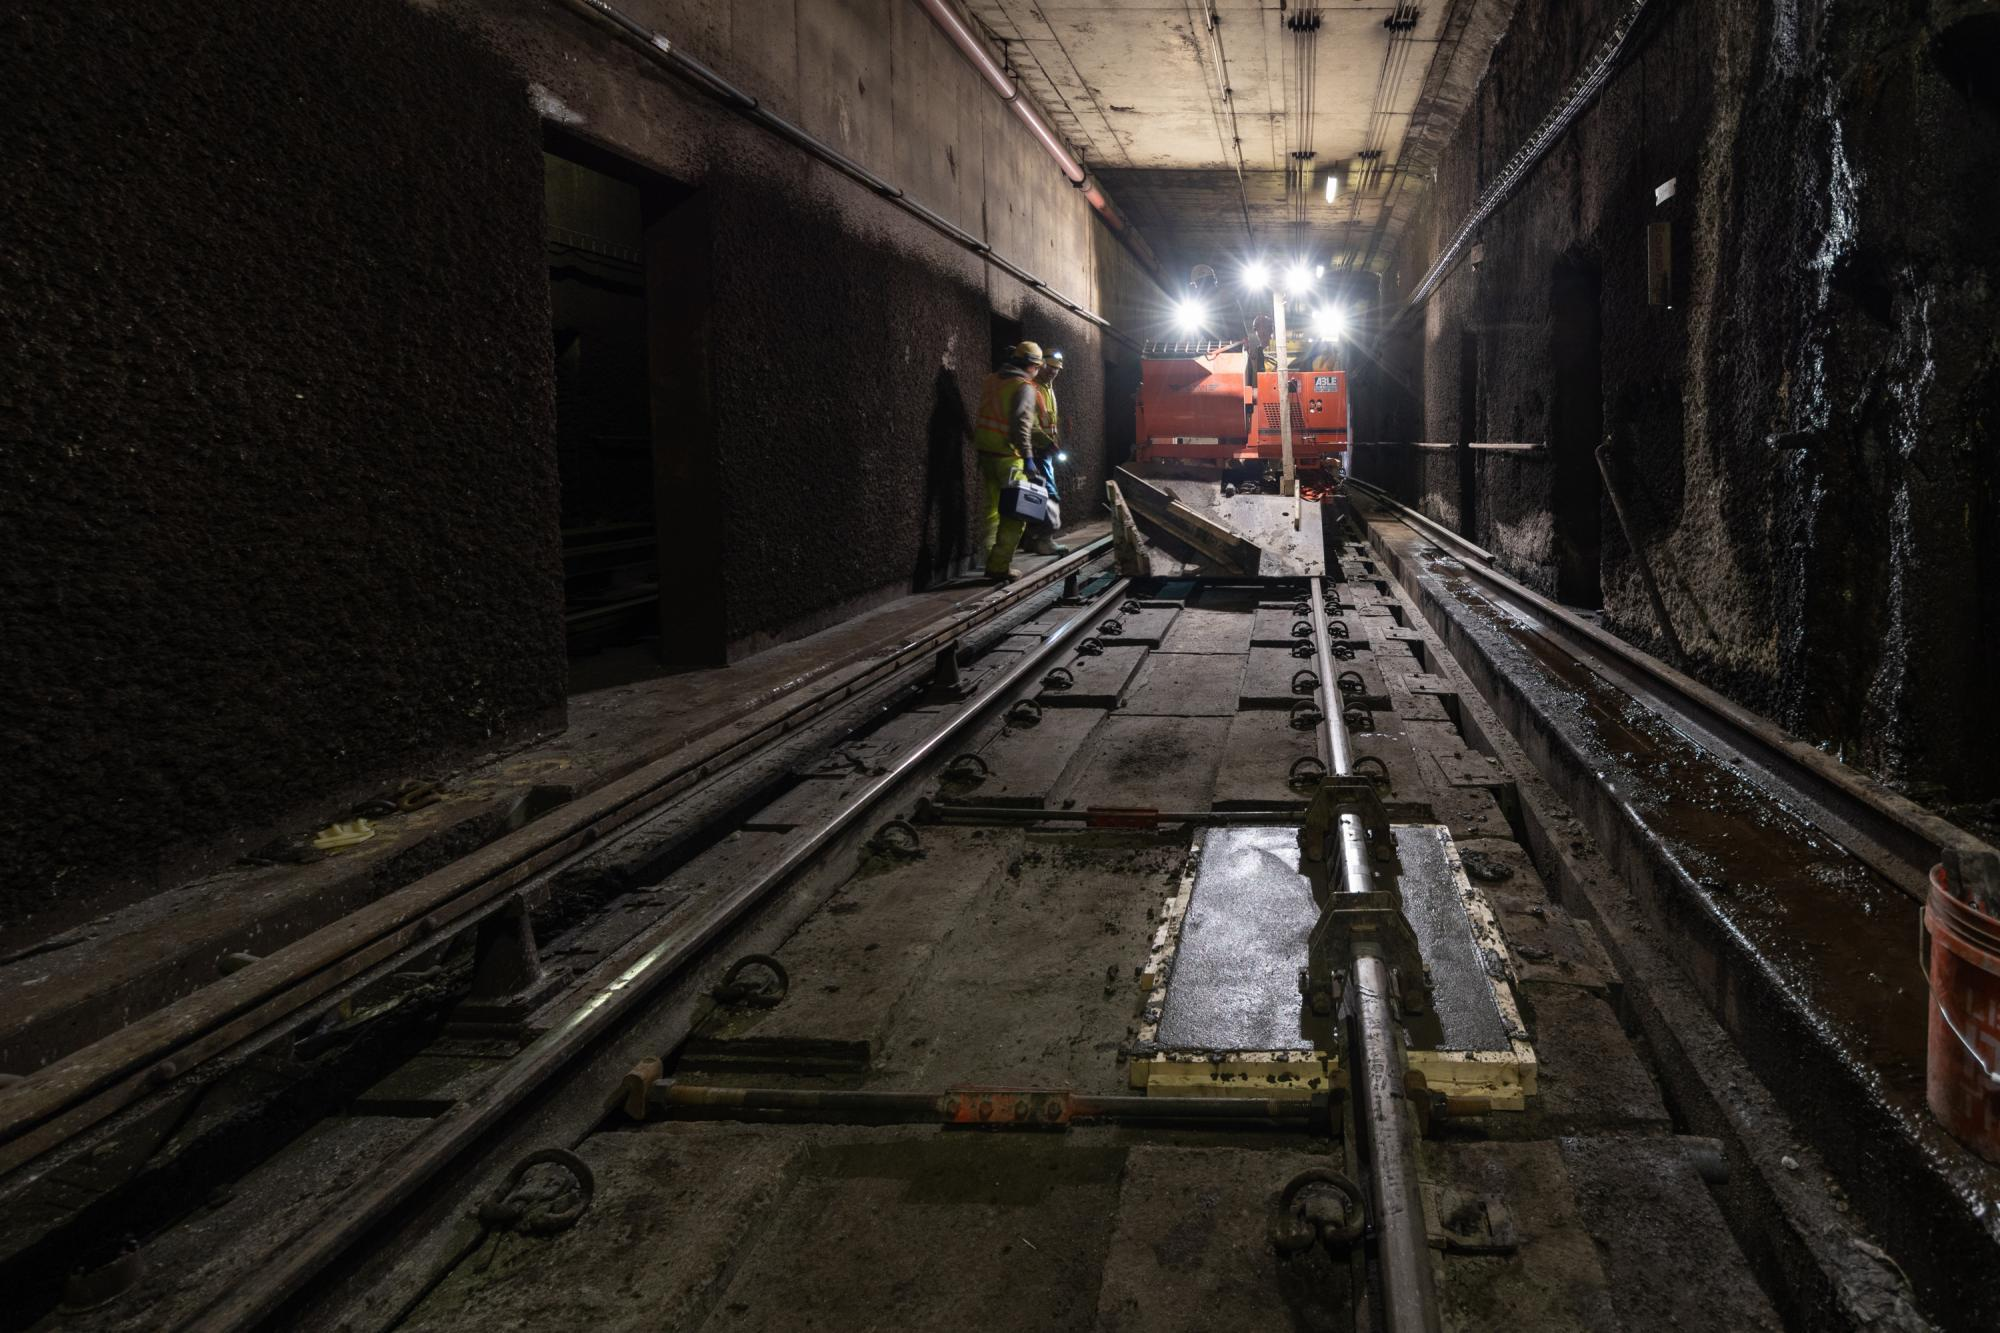 A crew works on maintenance in a tunnel